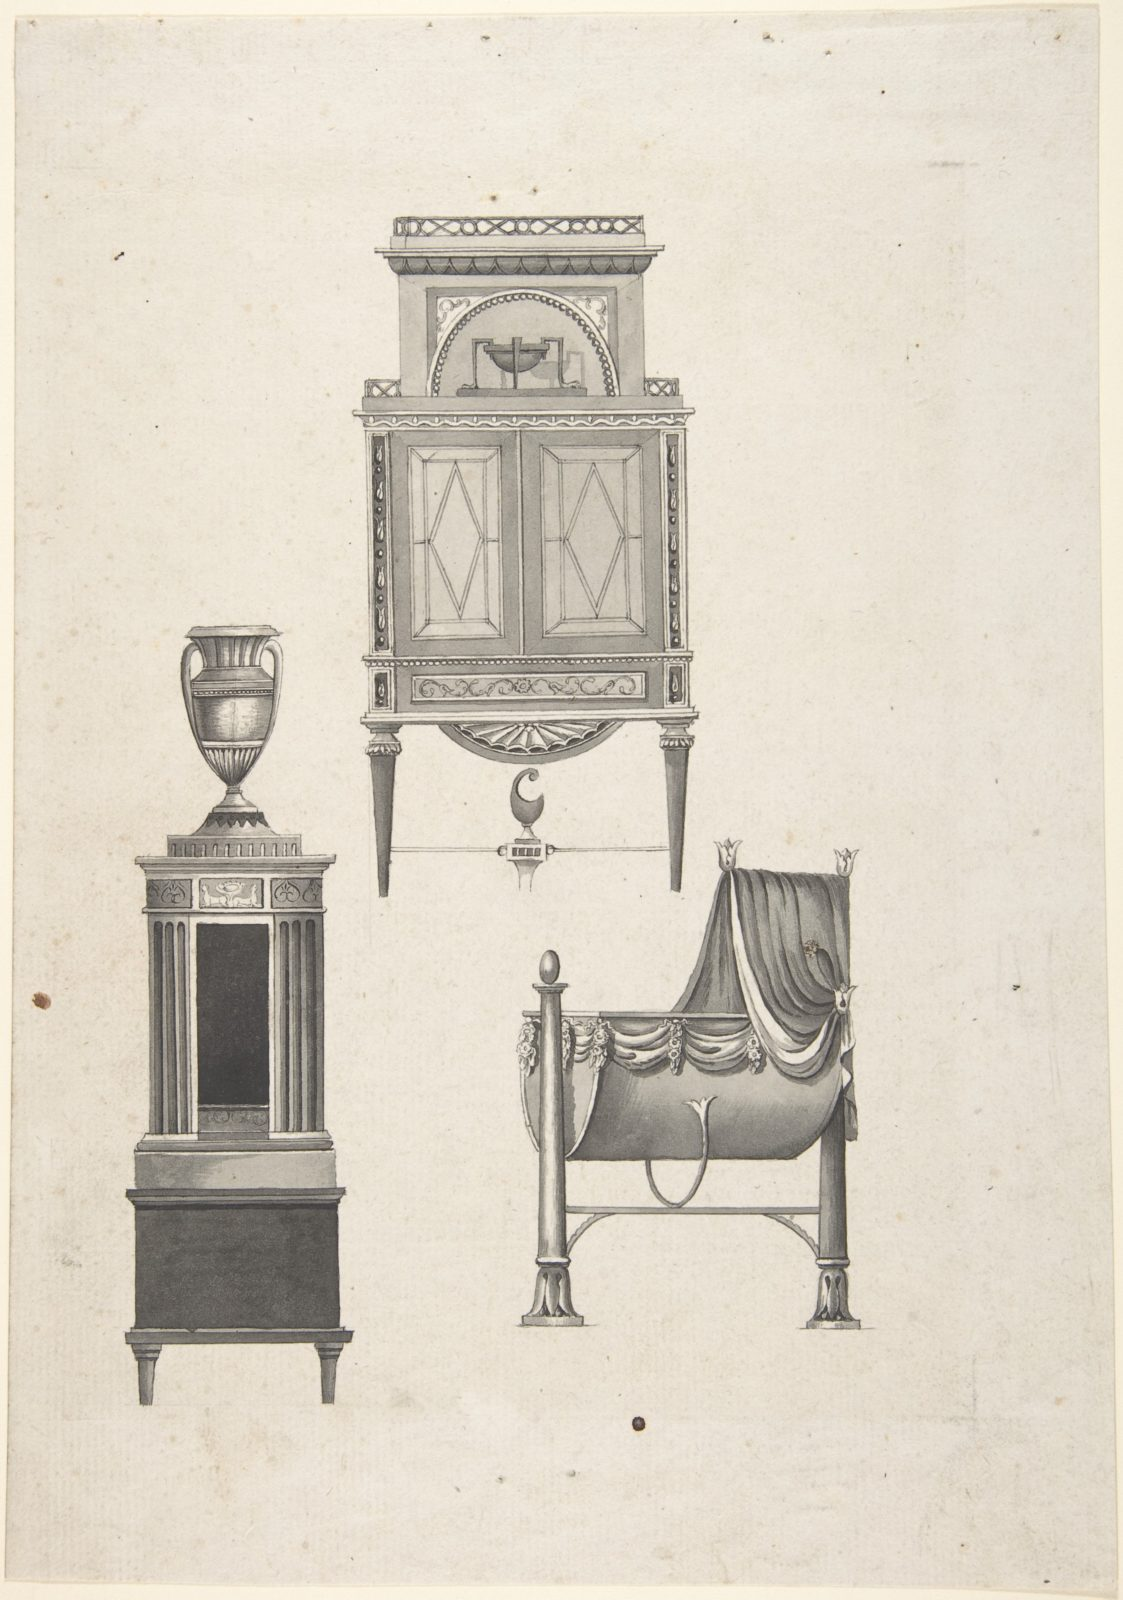 DESIGN FOR FURNITURE IN A VARIATION ON THE STYLE OF THOMAS SHERATON